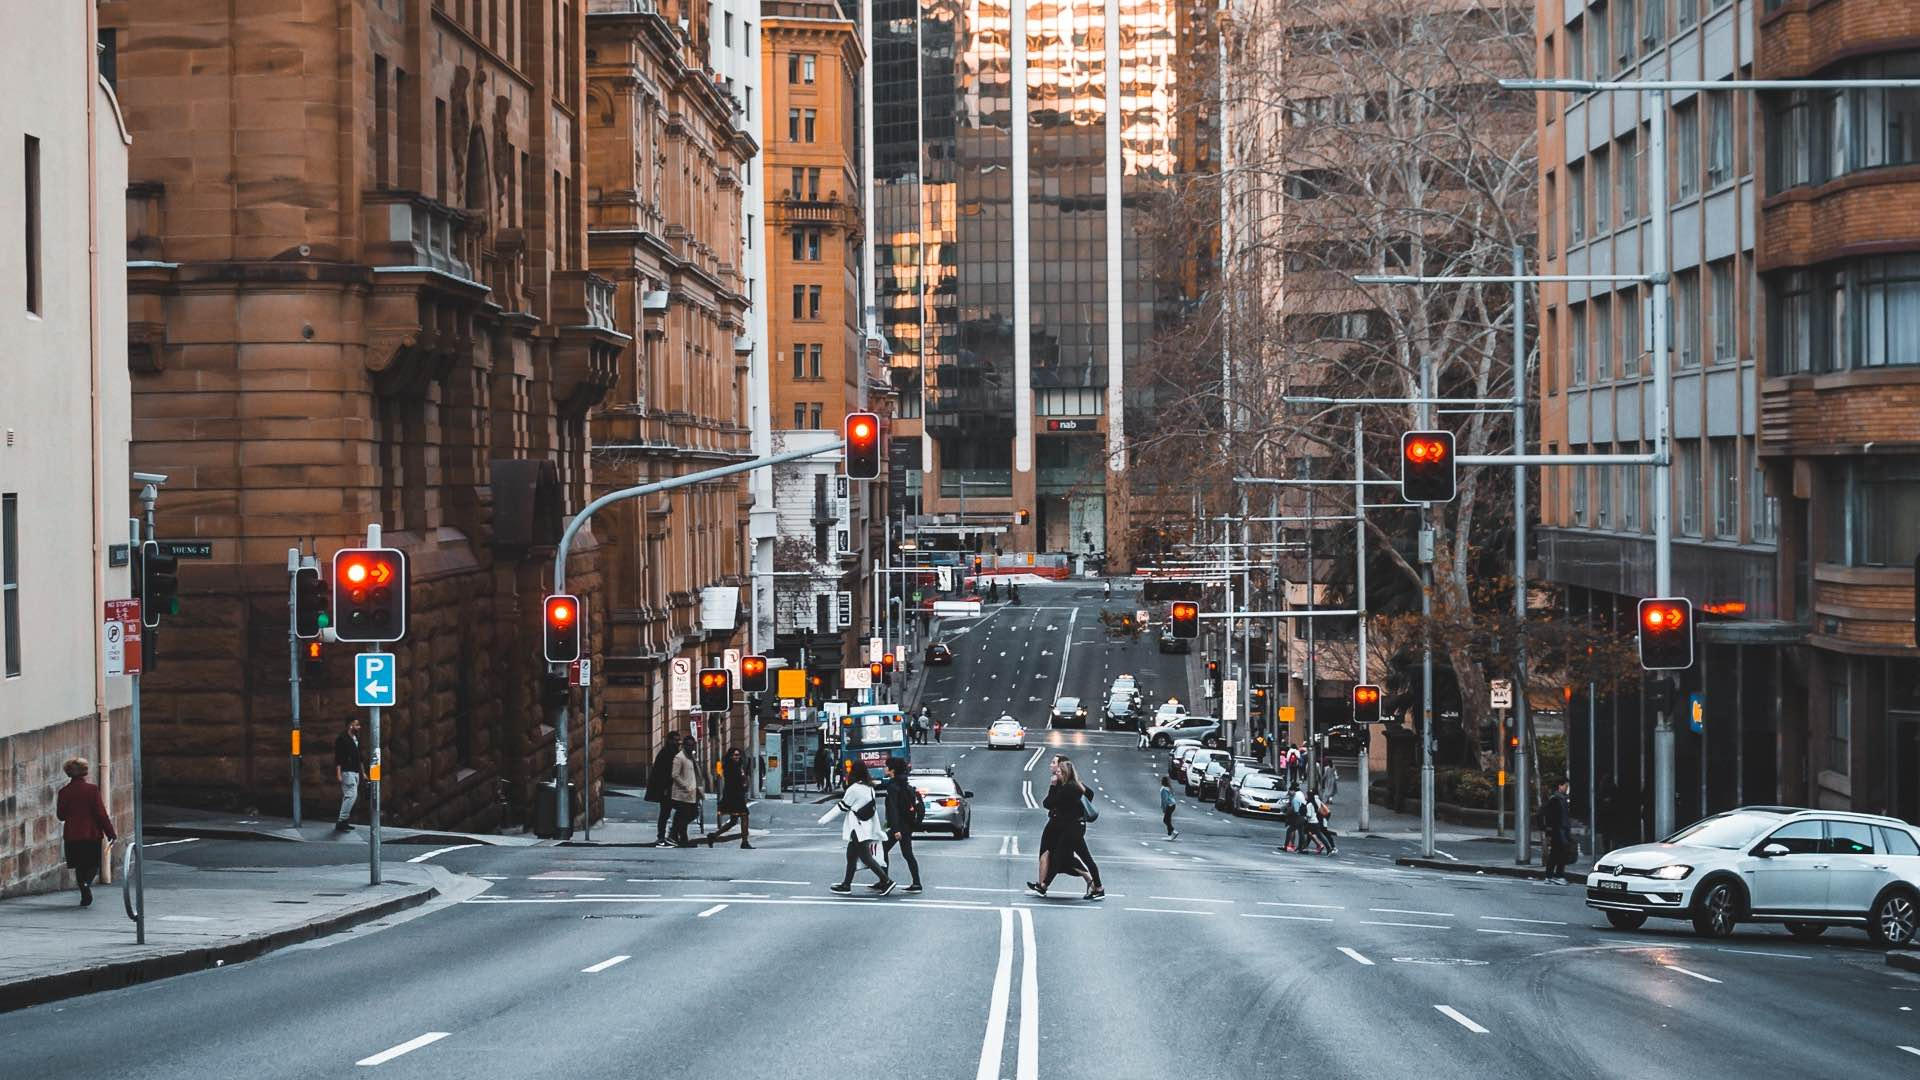 Greater Sydney Is Implementing Stricter Lockdown Rules Including a Citywide Five-Kilometre Limit